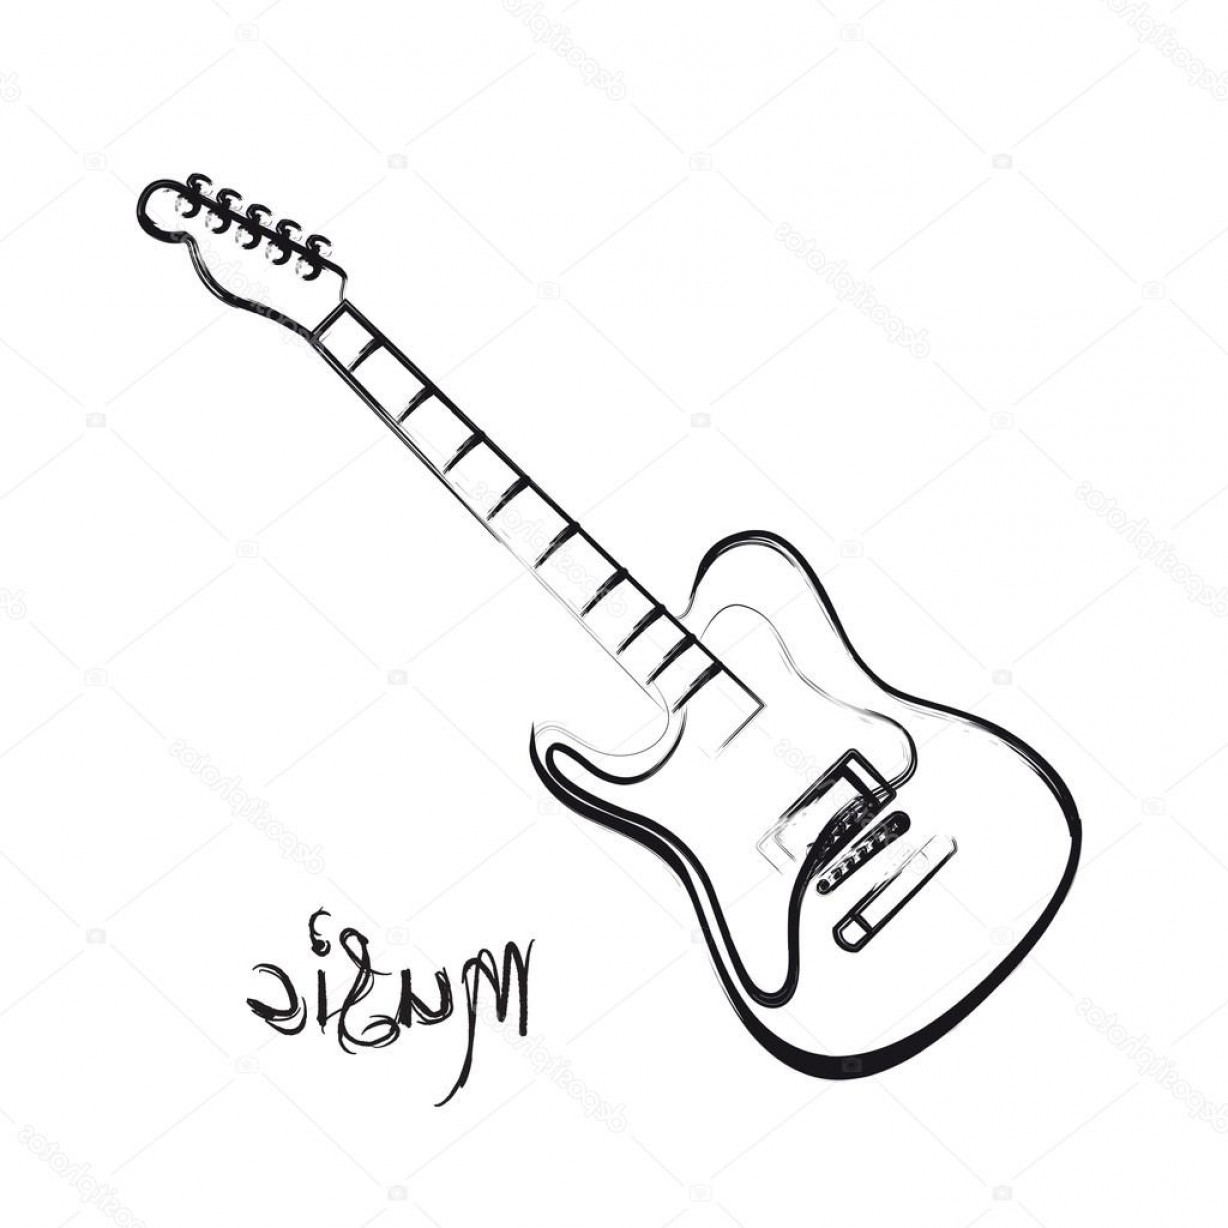 how to draw a electric guitar step by step draw an electric guitar in photoshop how draw by step a step guitar to electric